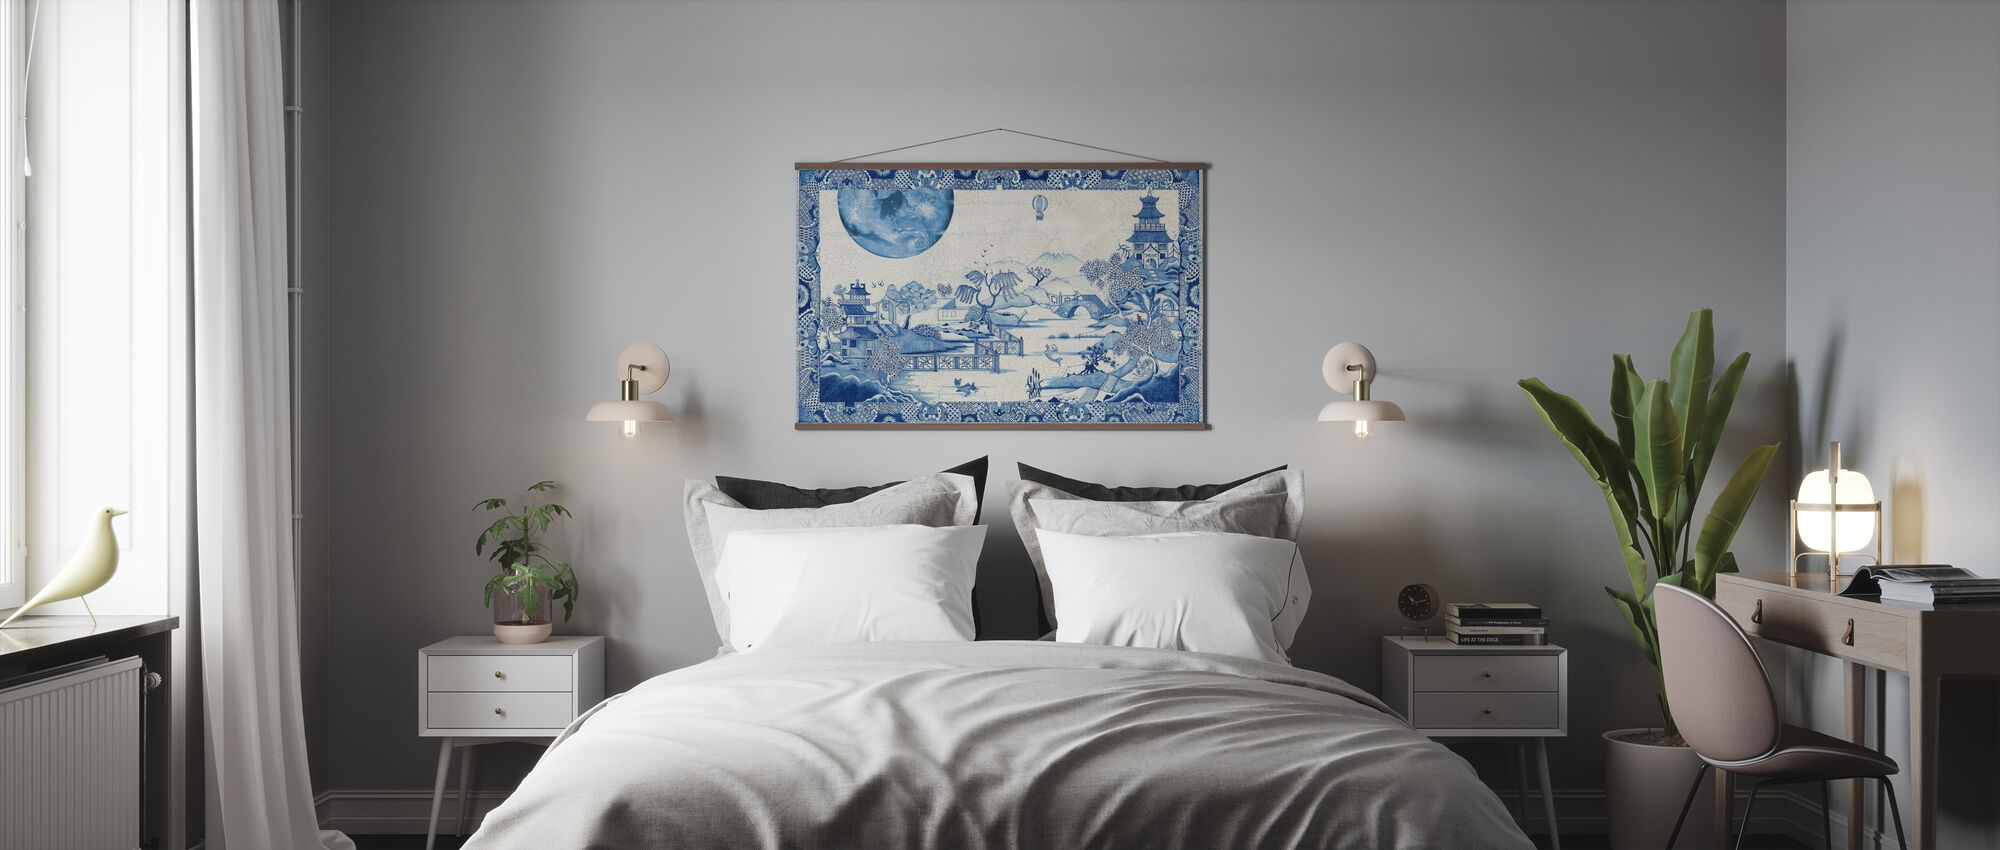 Blue Moon Crazed - Poster - Bedroom